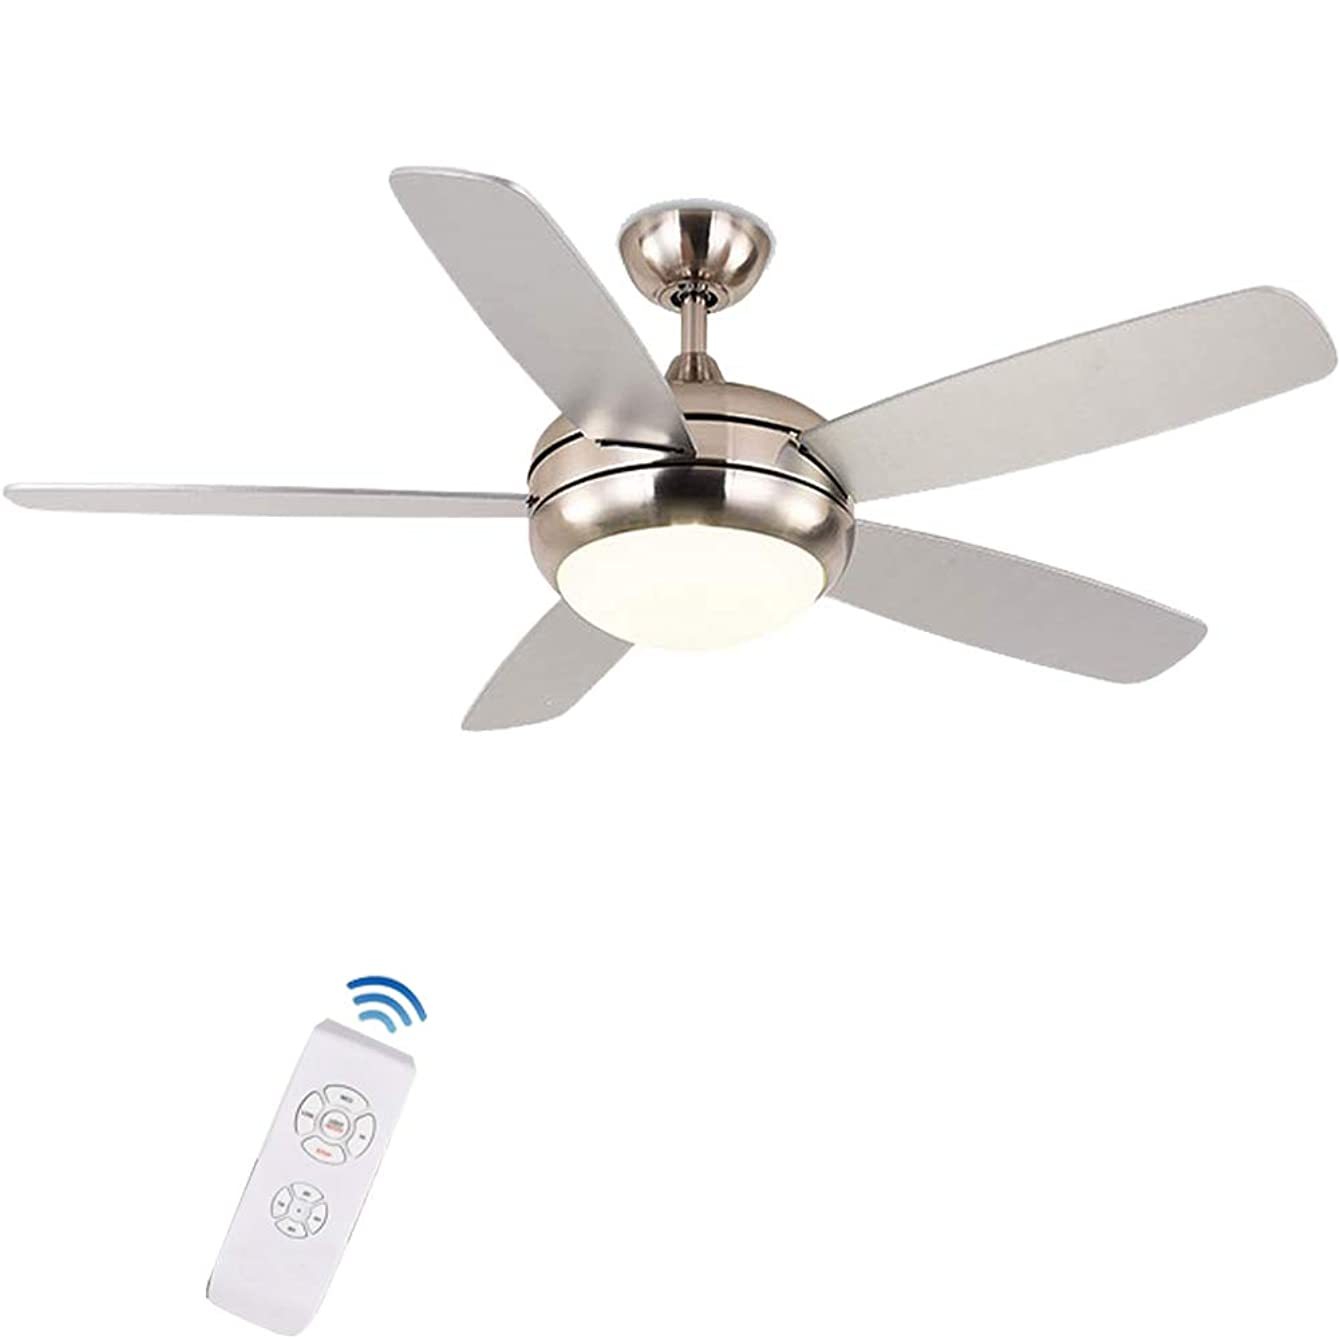 FINE MAKER 42inch Ceiling Fan Light with Remote Switch and Reversible ABS Blades Warm Light Silent Copper Wire Motor for Living Room, Bedroom, Dinning, Meeting Room